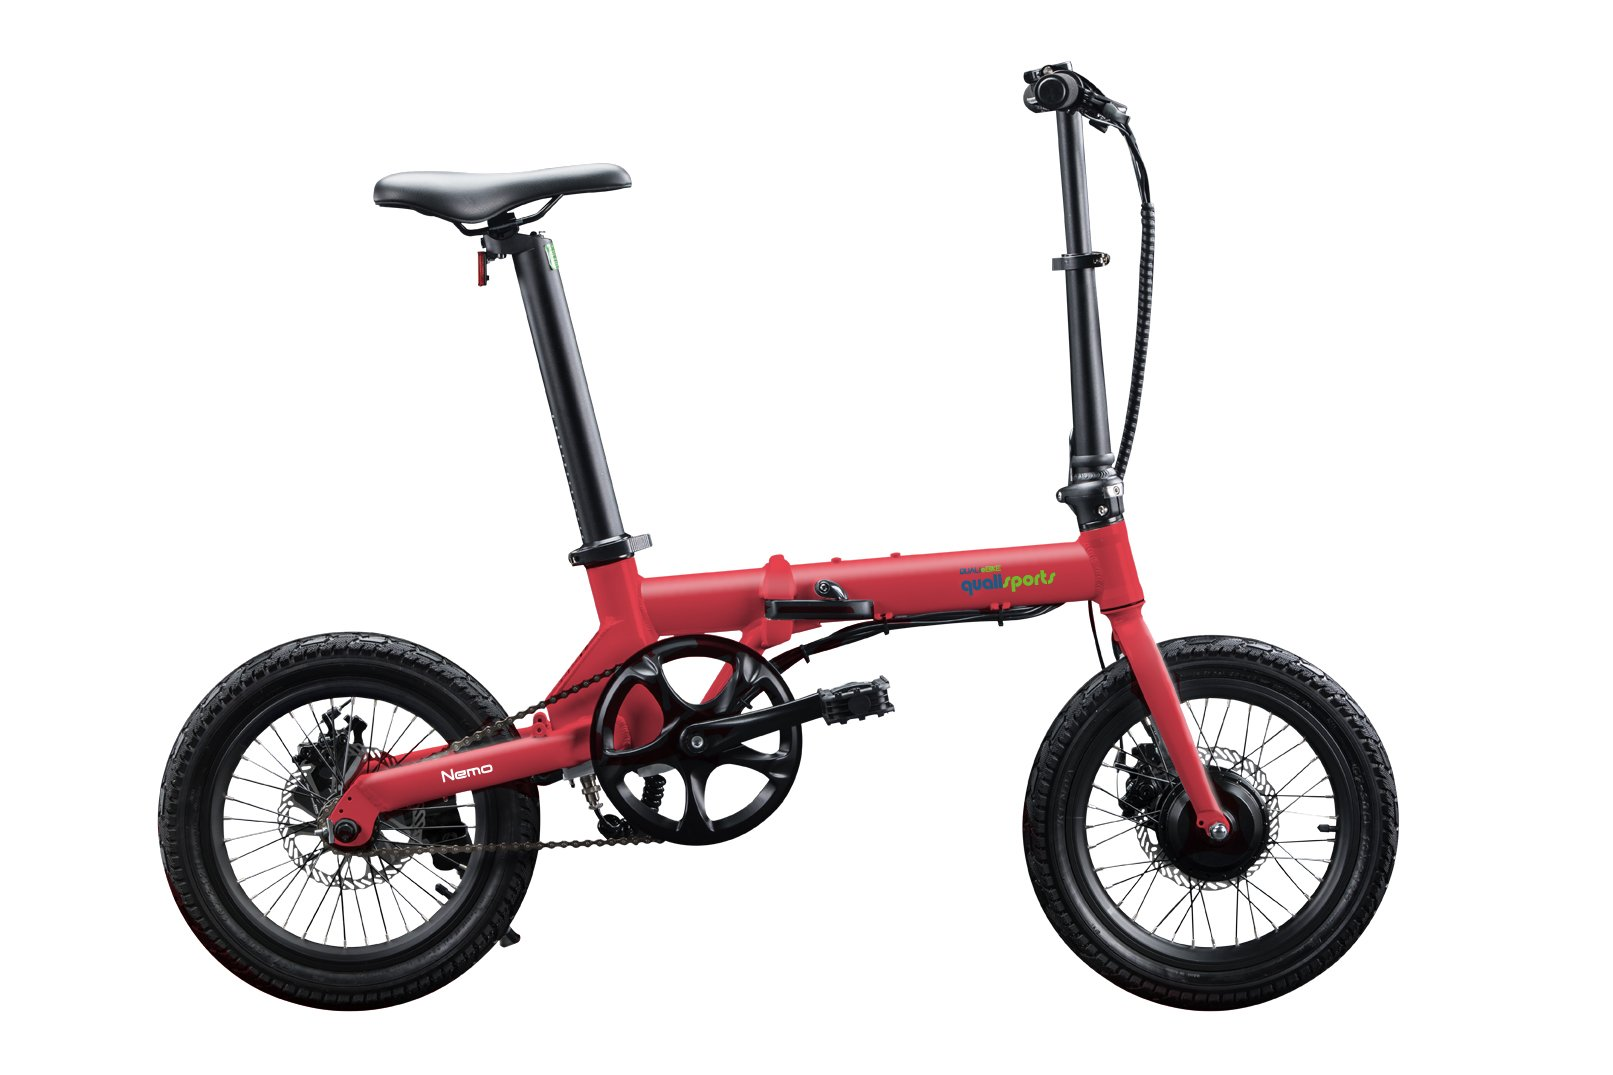 "Qualisports Volador-20""TIRE Folding Electric Bike Red/Black $1099   Qualisports crafted the ""Volador"" after years of feedback from our NEMO customers.  The Volador is our 20"" Electric-bike, which weights only 38.5lbs. It effortlessly folds down to 32.68"" x 15.75″ x 26.38″ compact size. It features 20 x 1.95"" tire, and a Shimano 7-speed mechanical gear shifting in addition to an electronic 5 level shifting capability.  As with our ""Nemo"" Bikes, Quali-bikers can easily store the Volador in tight out of the way places in apartments, closets, under your work desk, in an RV, a boat or even on your own plane. The Volador features an easy to read on-board multifunctional LCD display. It will comfortably accommodate a cyclist from 5′ to 6'3″ tall.  The Volador can be ridden in four different modes:  As a normal bike, (PAS) Pedal Assist mode, Cruise control mode, or enjoy an effortless riding experience with a simple press of a trigger throttle to help you get over a hill.  The Volador has an efficient and strong 350W brushless geared motor which will assist you to overcome an 18-degree climb effortlessly. Our patented stylish and stealthy seat post design is practical and hides our batteries (Samsung 252WH). The Volador will give the Quali-biker's 30miles range on a single charge."